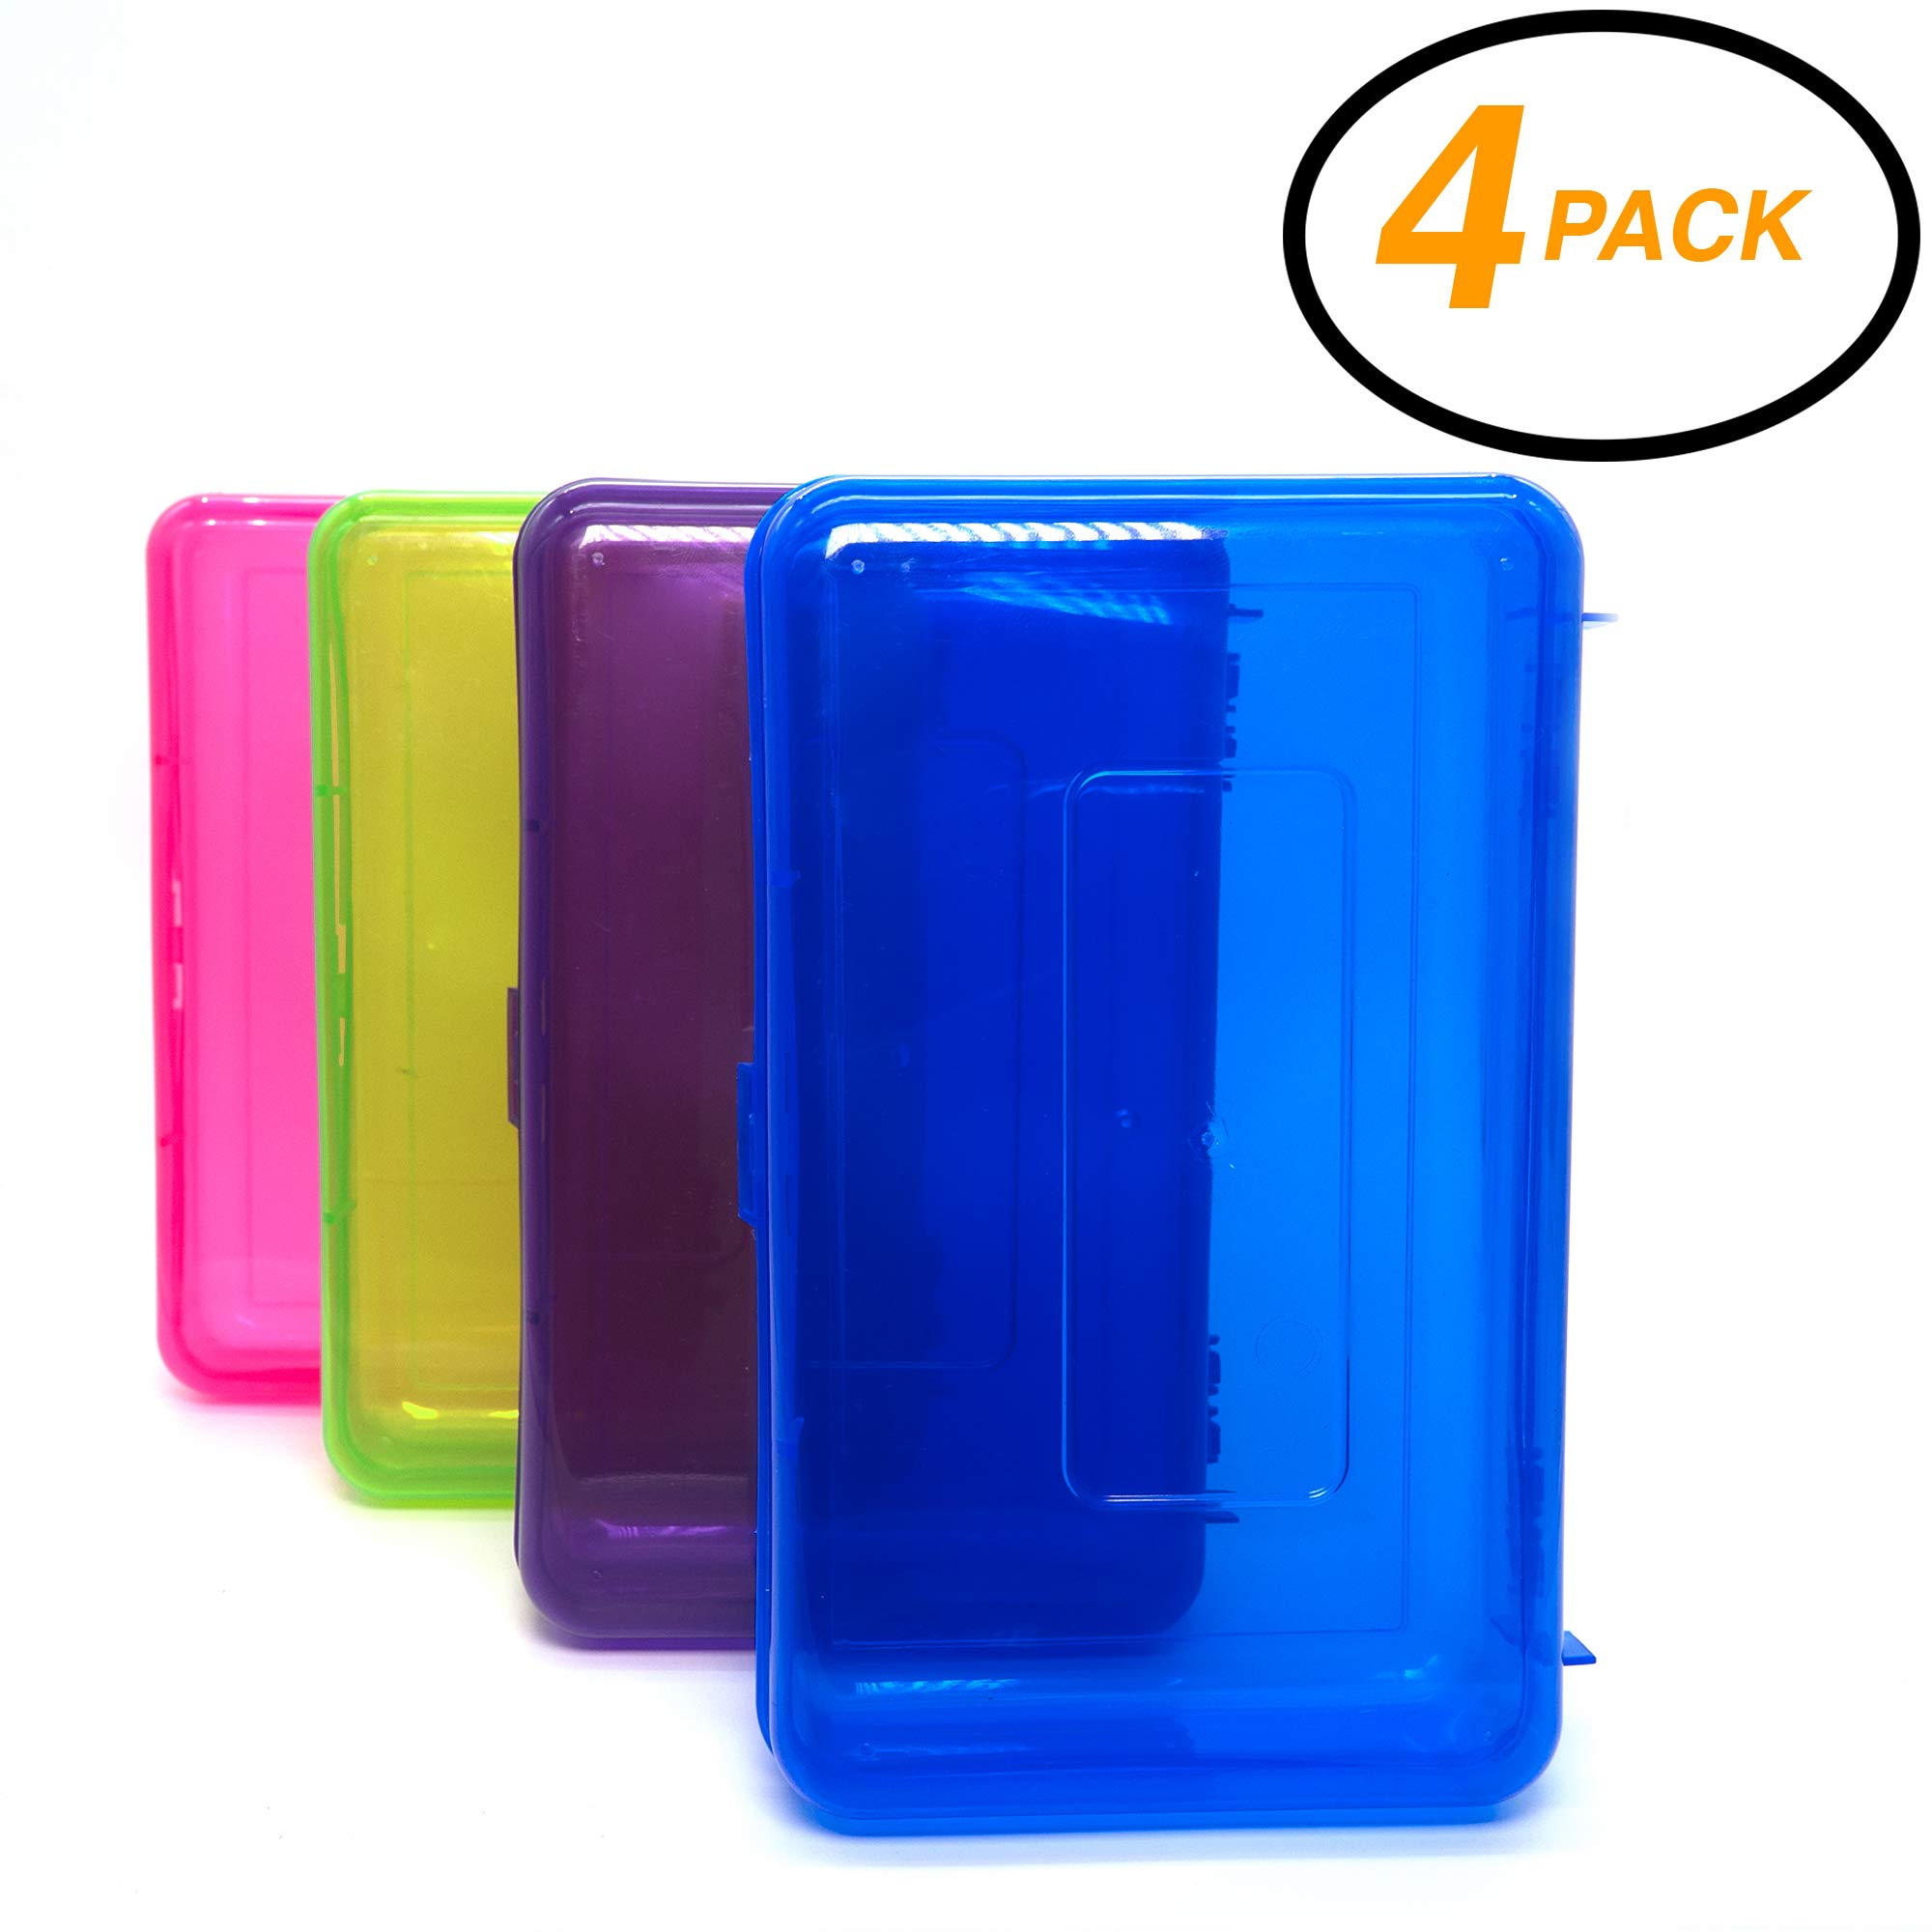 Emraw Utility Storage Box - Bright Color Multi Purpose Pencil Box for School Supplies Durable Plastic Pencil Box, Small Plastic Pencil Case, Mini Organizer Storage Box (Random 4-Pack) by Emraw